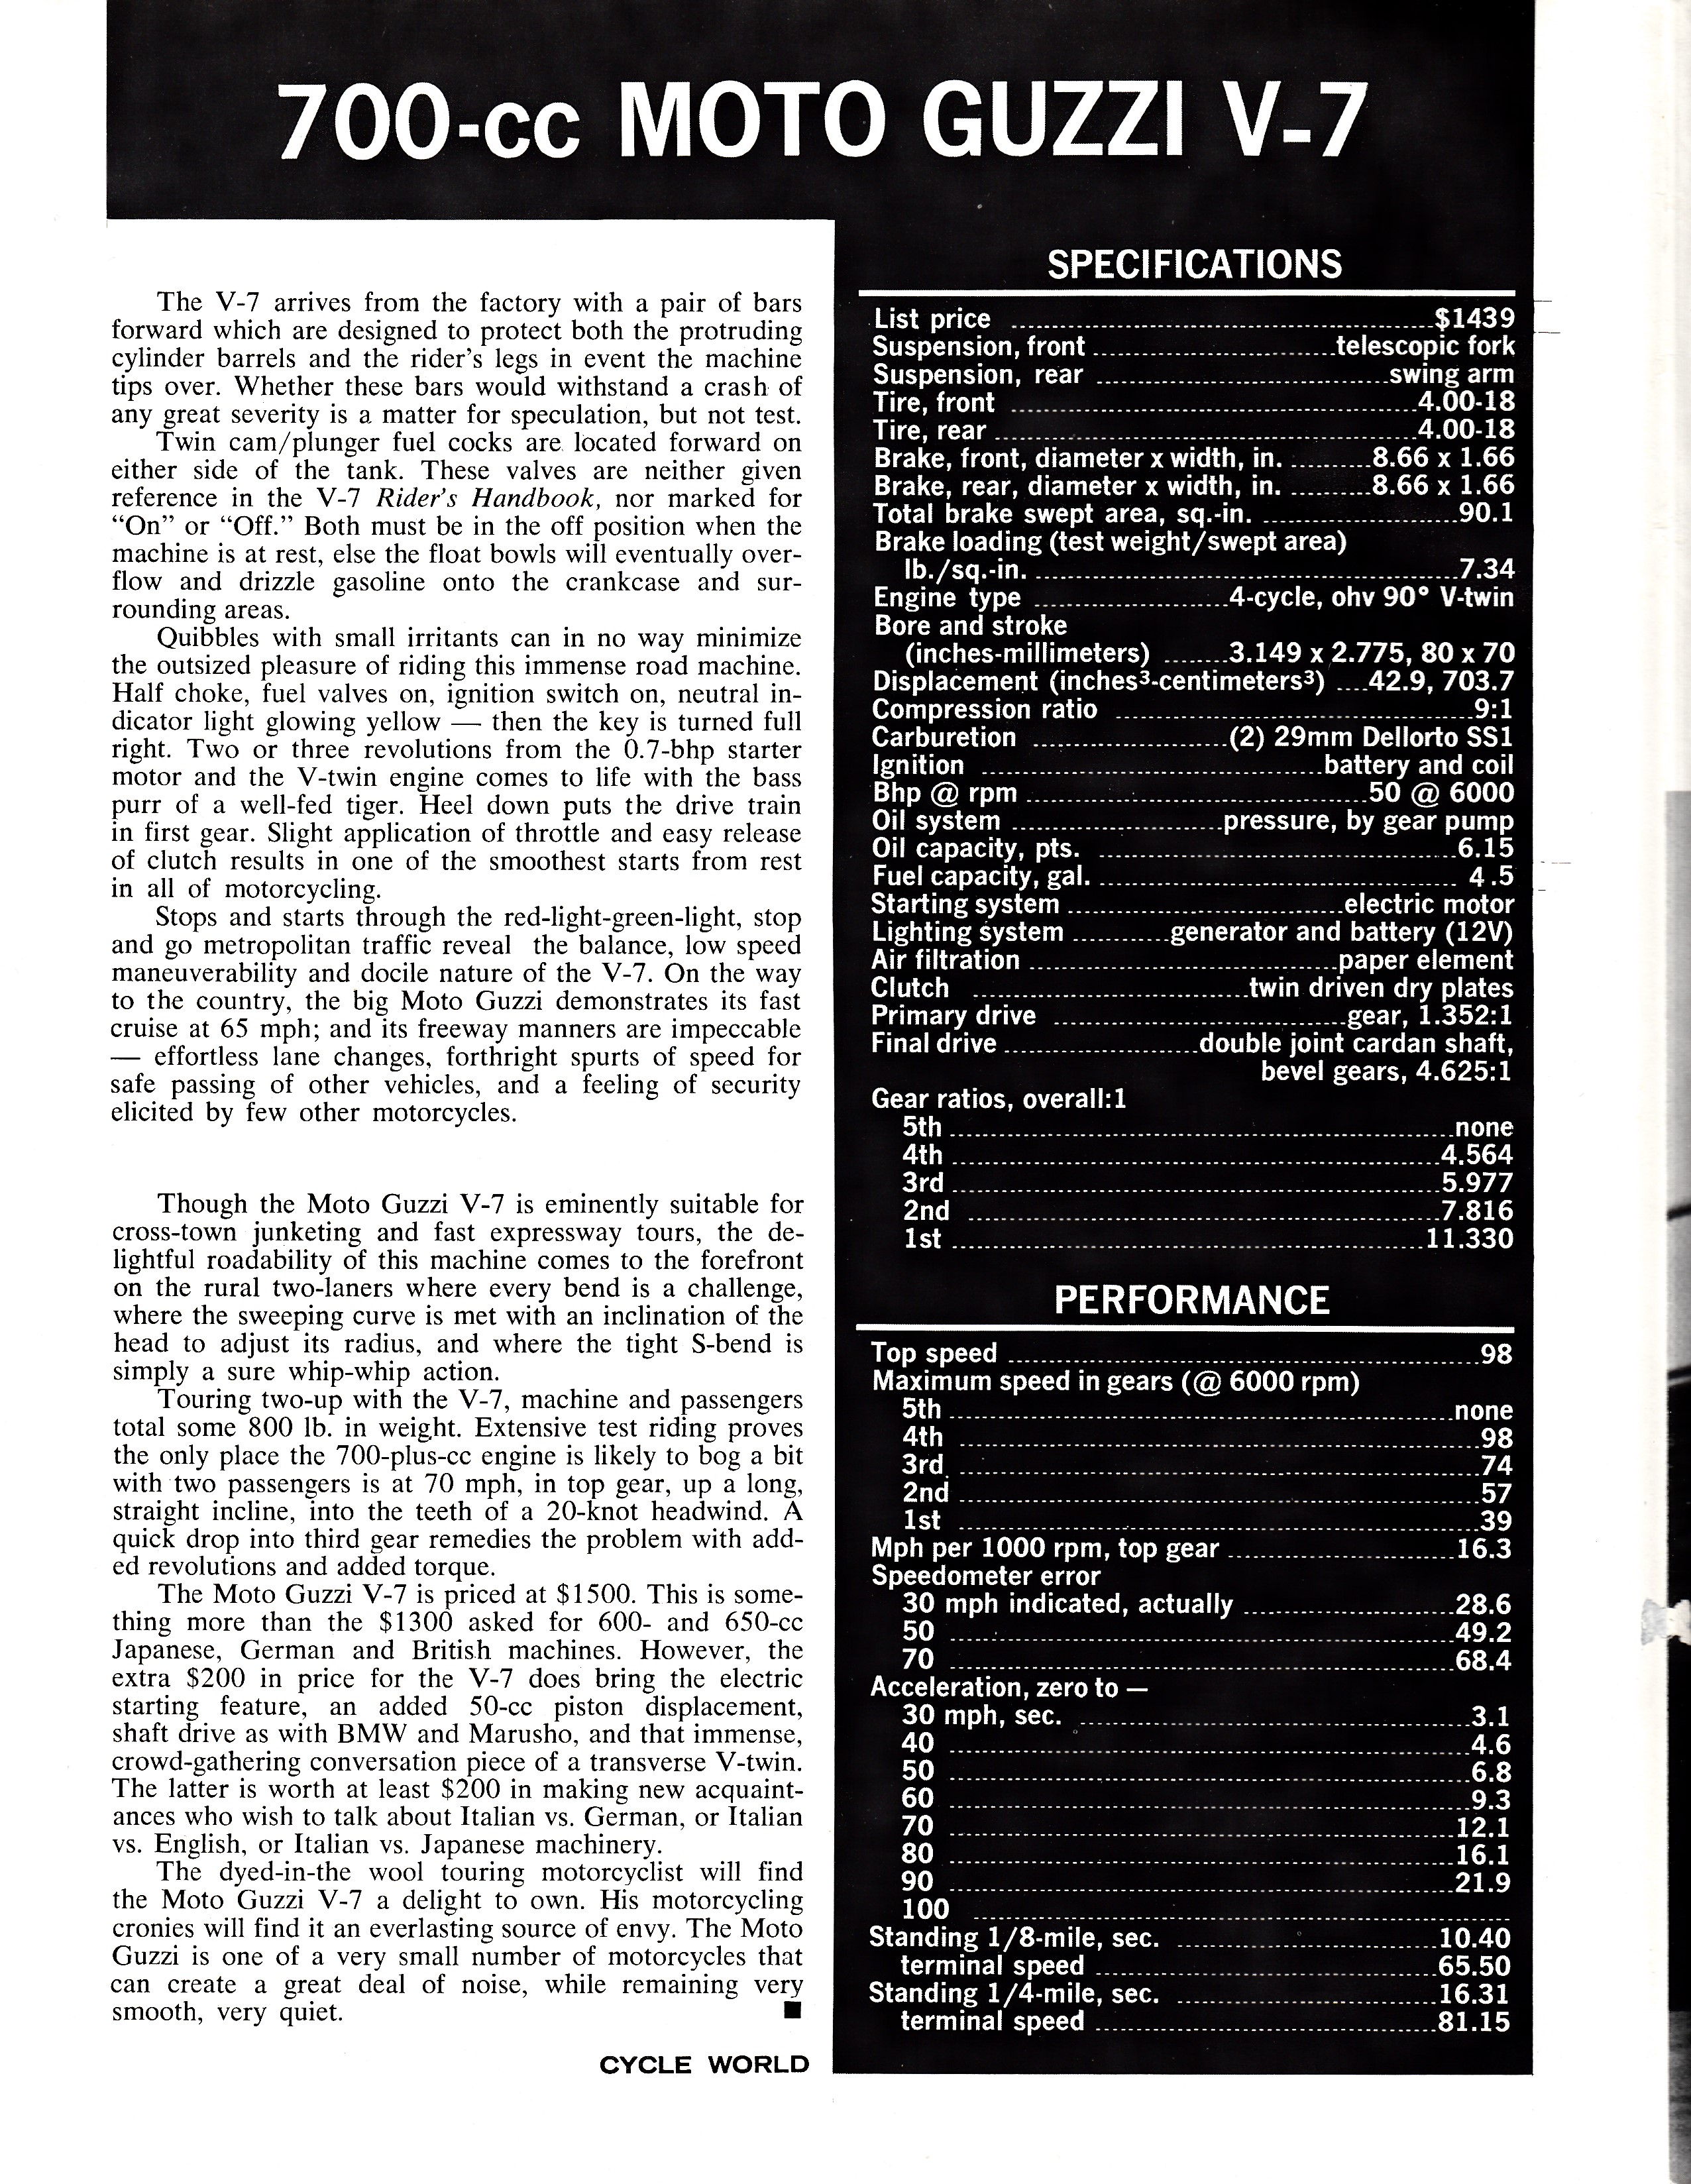 Moto Guzzi V700 factory brochure of magazine reviews, Page 4 of 8.